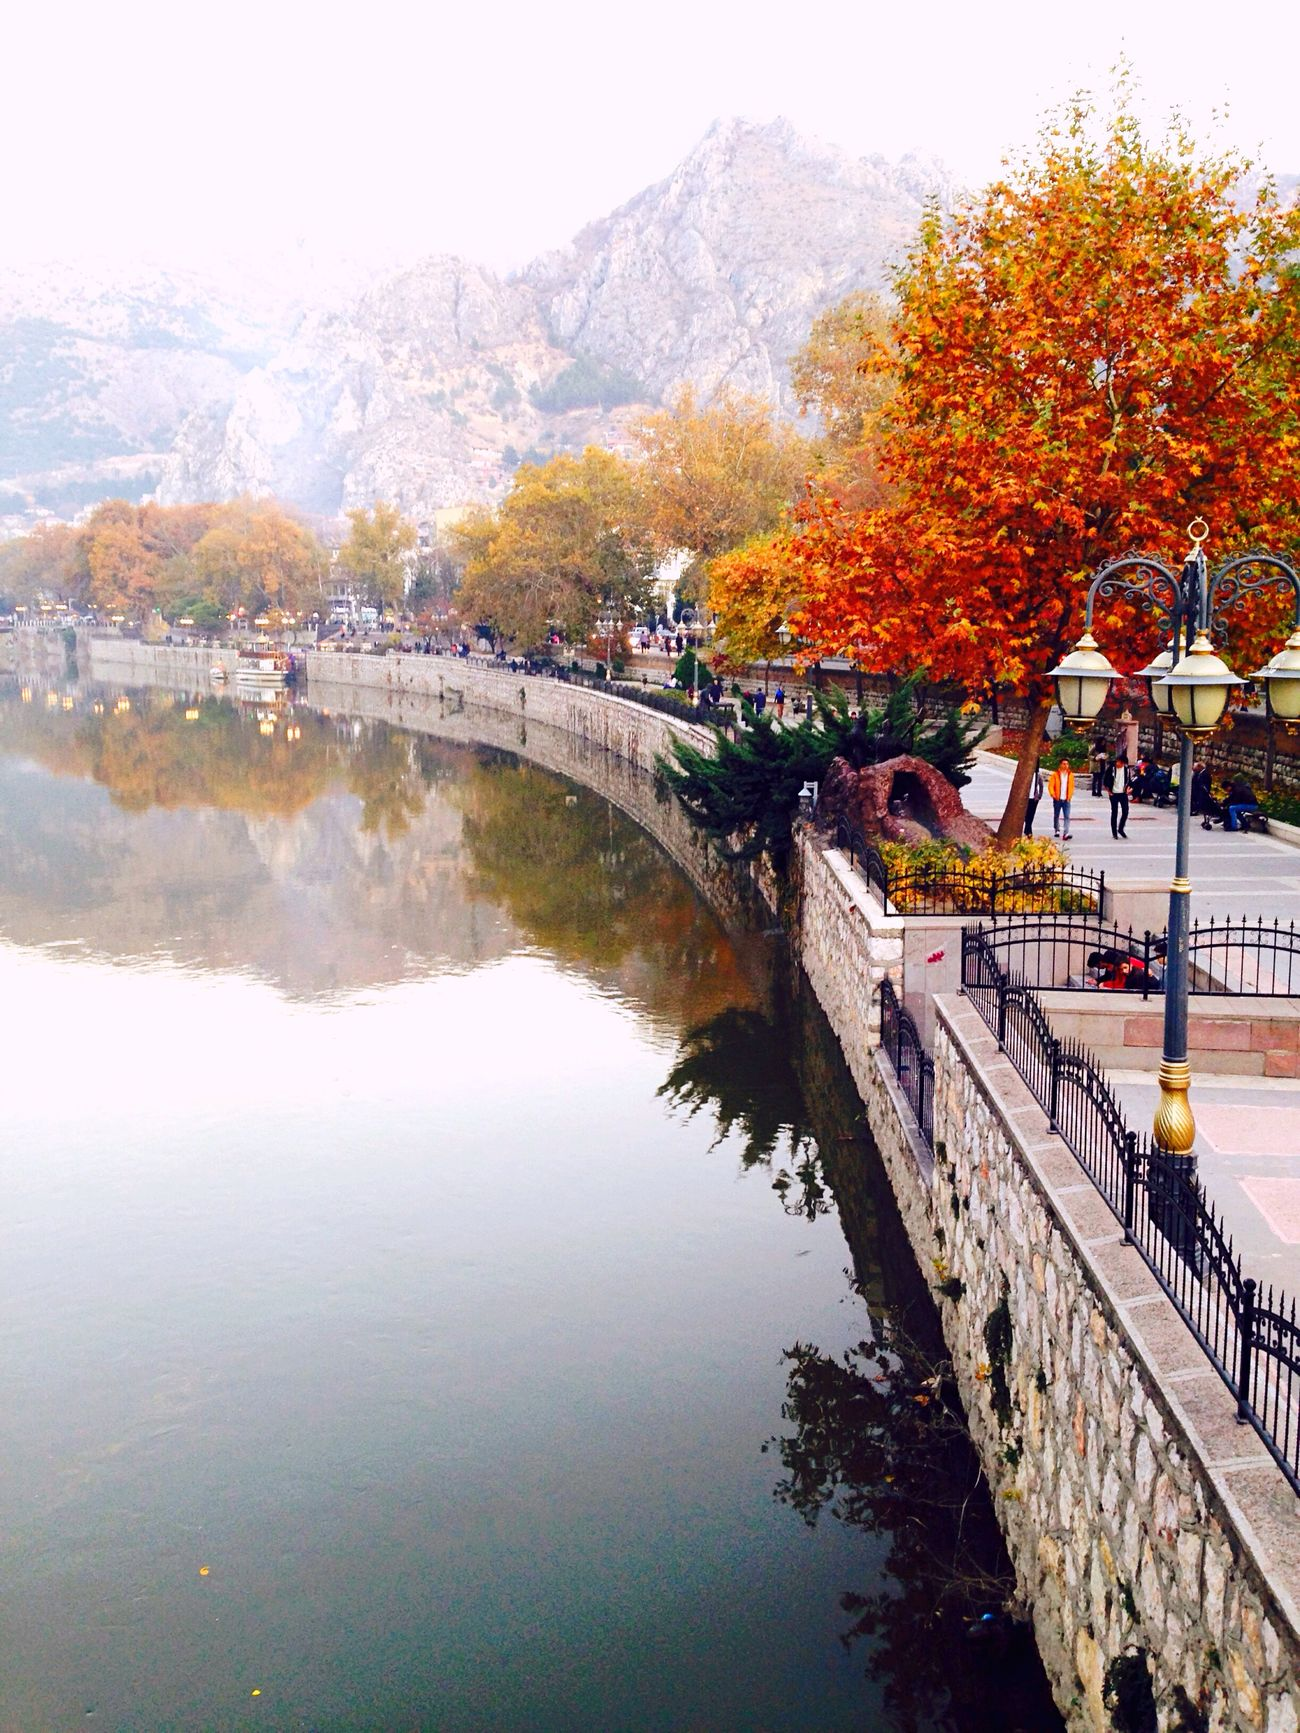 History Water Autumn Reflection Tree River Outdoors Nature Hello World EyeEm Gallery Cityscapes EyeEm Nature Lover Turkey Amasya